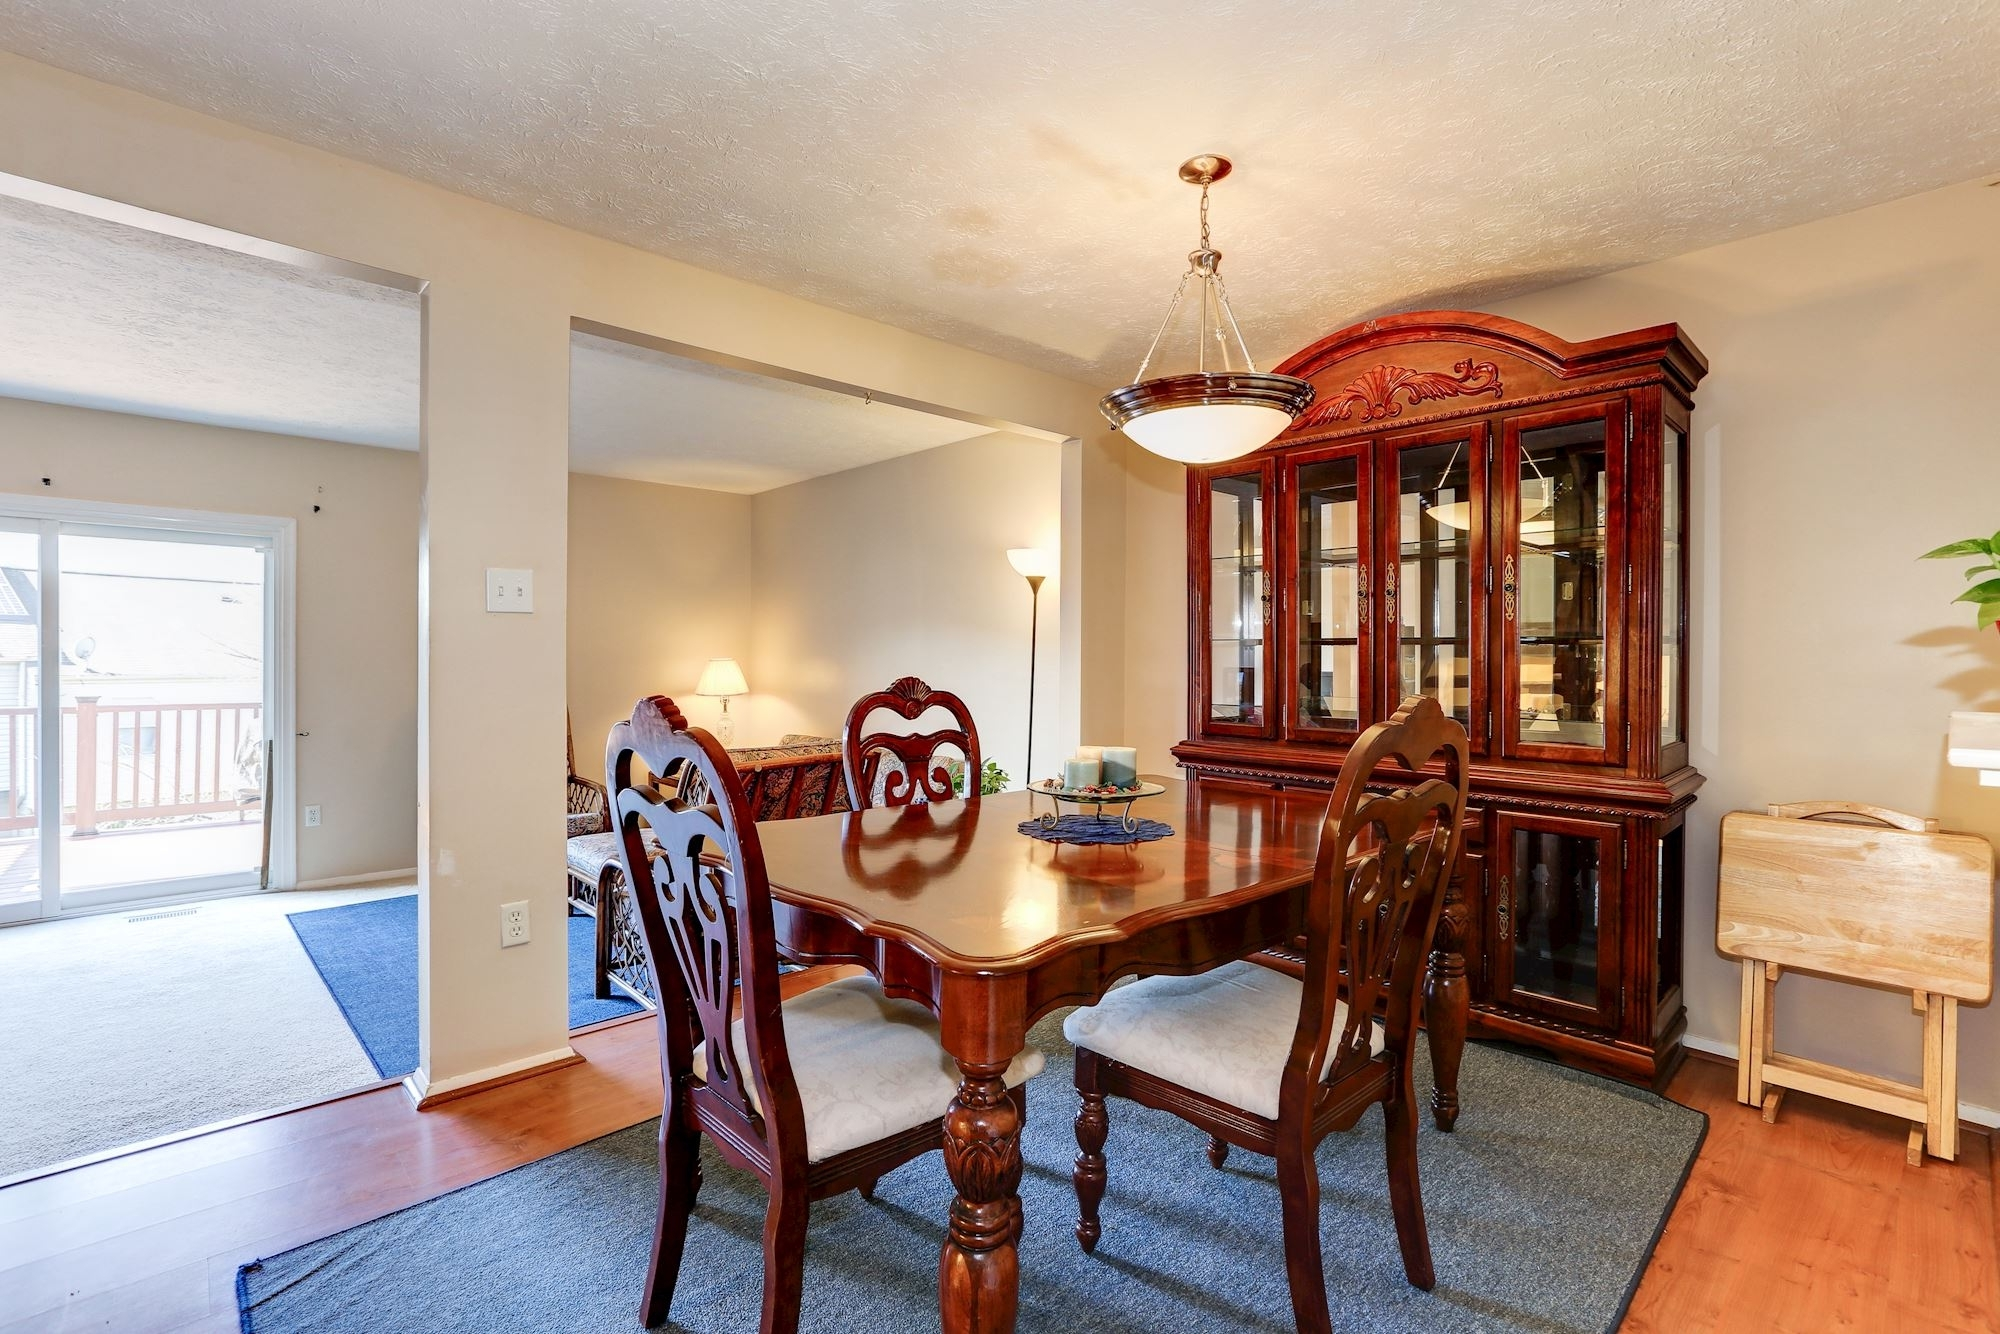 Partridge 6 Piece Dining Sets Regarding Widely Used Homevisit Virtual Tour: 19121 Partridge Wood Dr, Germantown, Md (View 21 of 25)